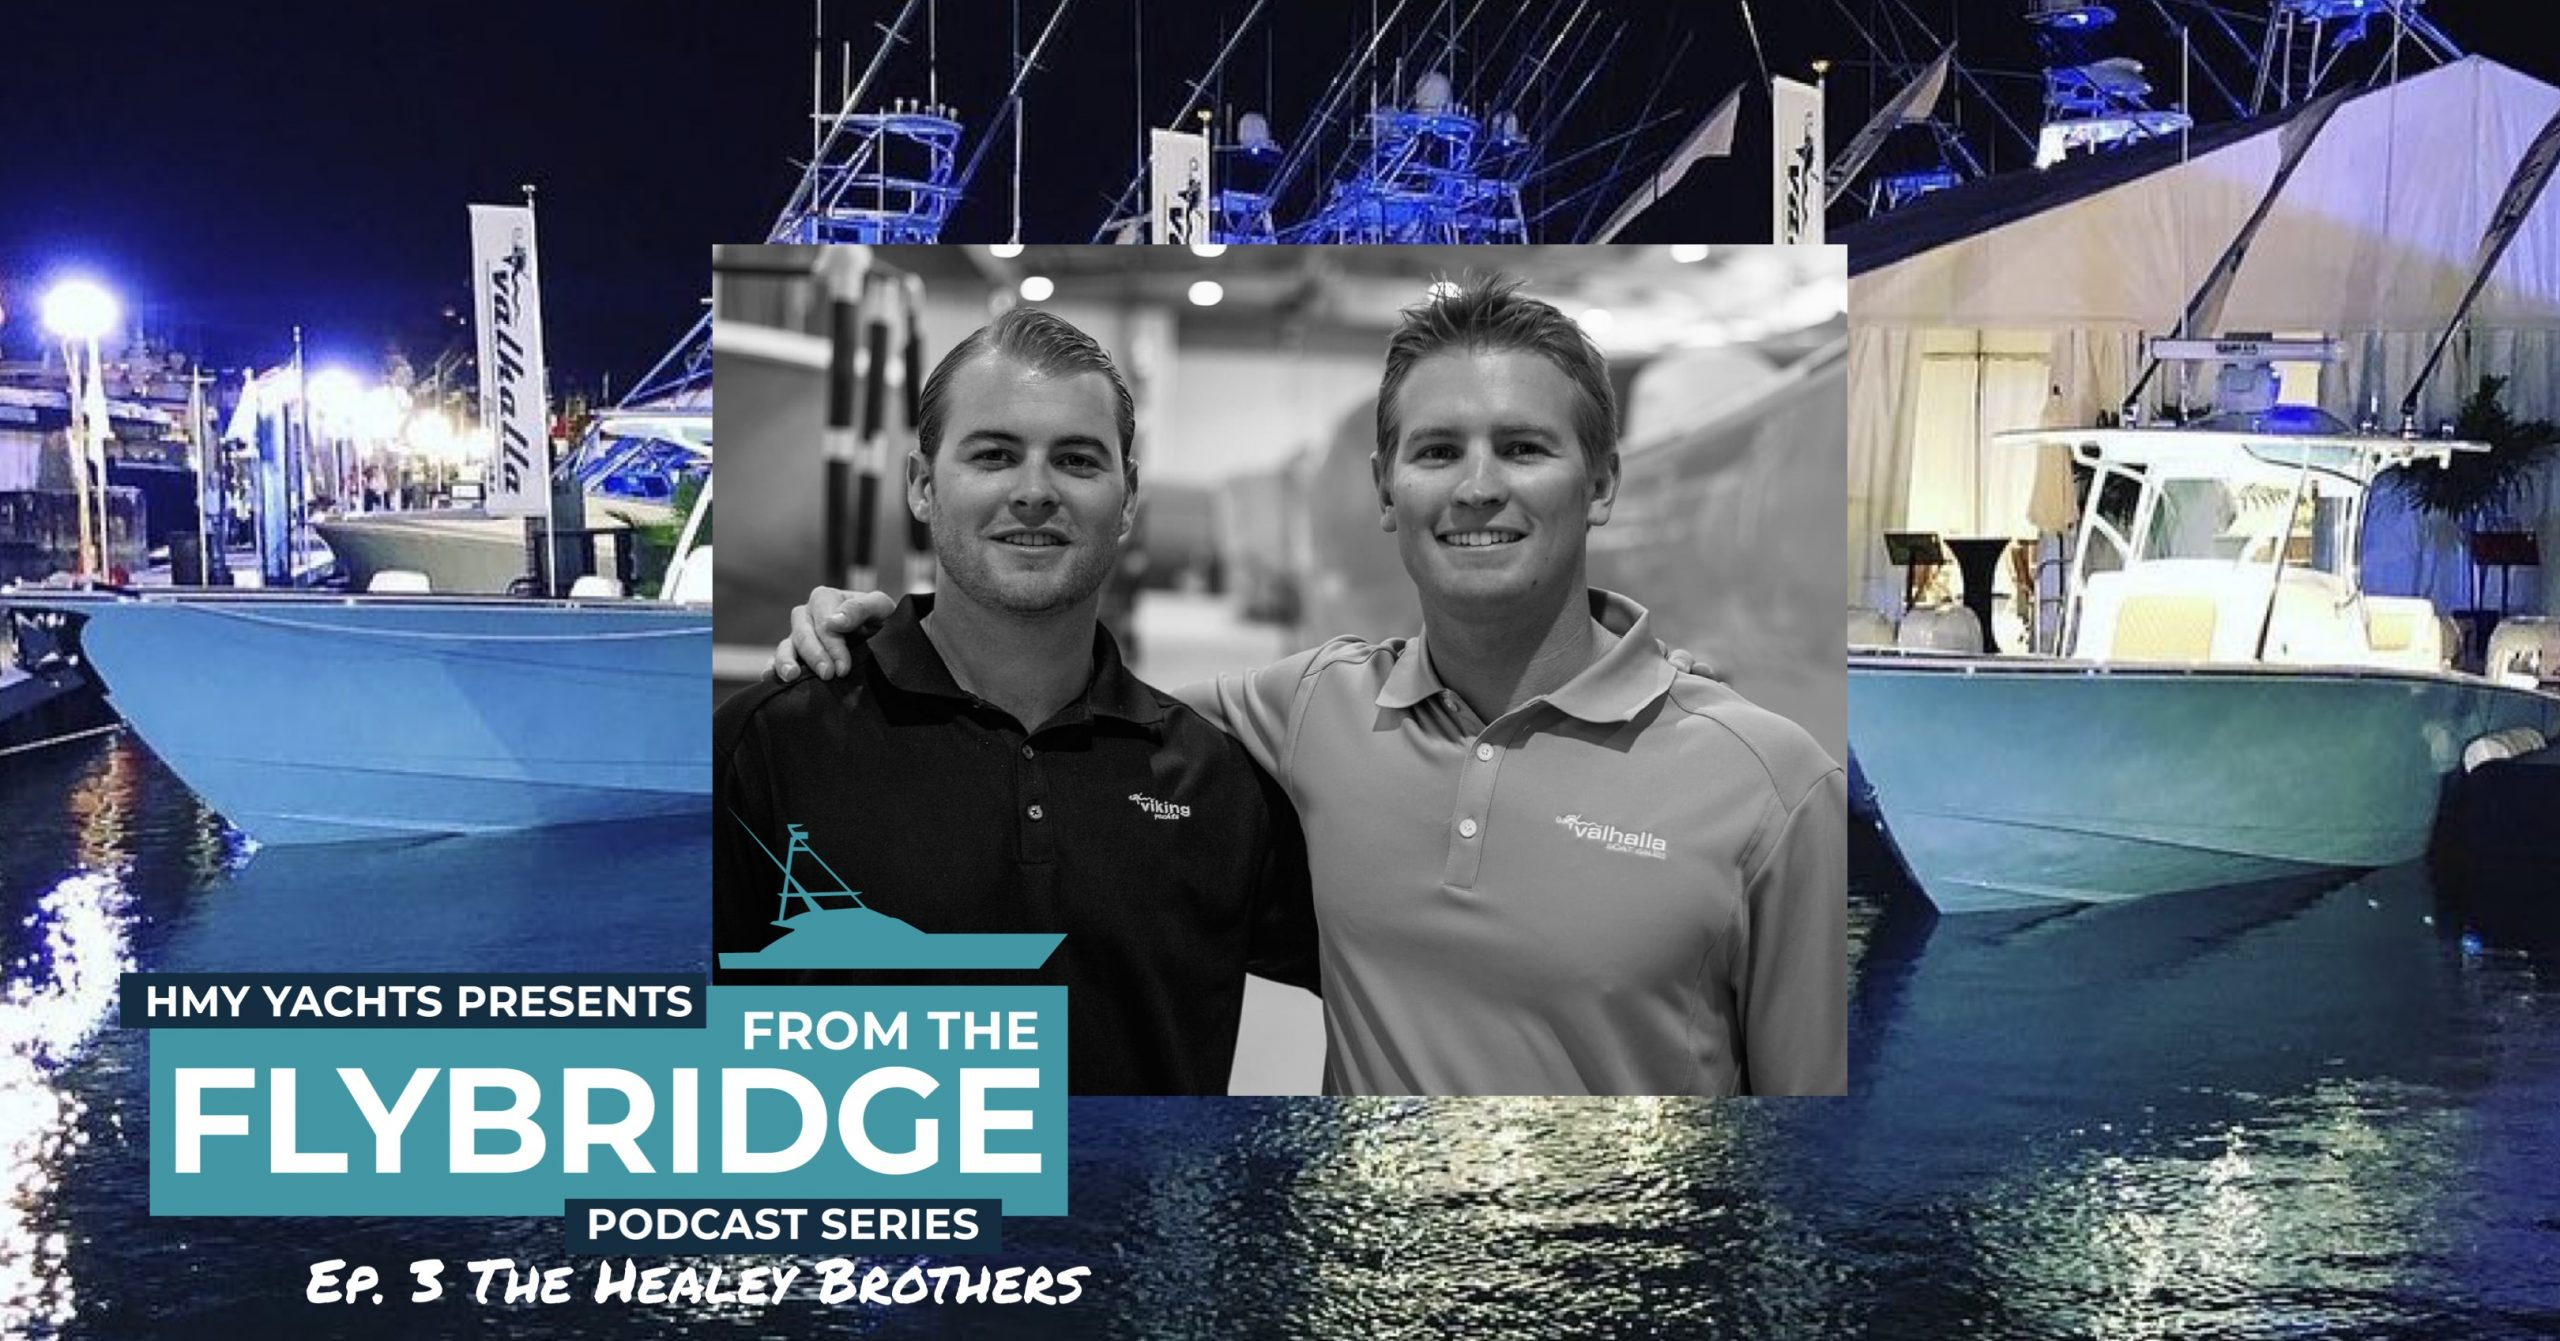 From the Flybridge- Episode #3 The Healey Brothers